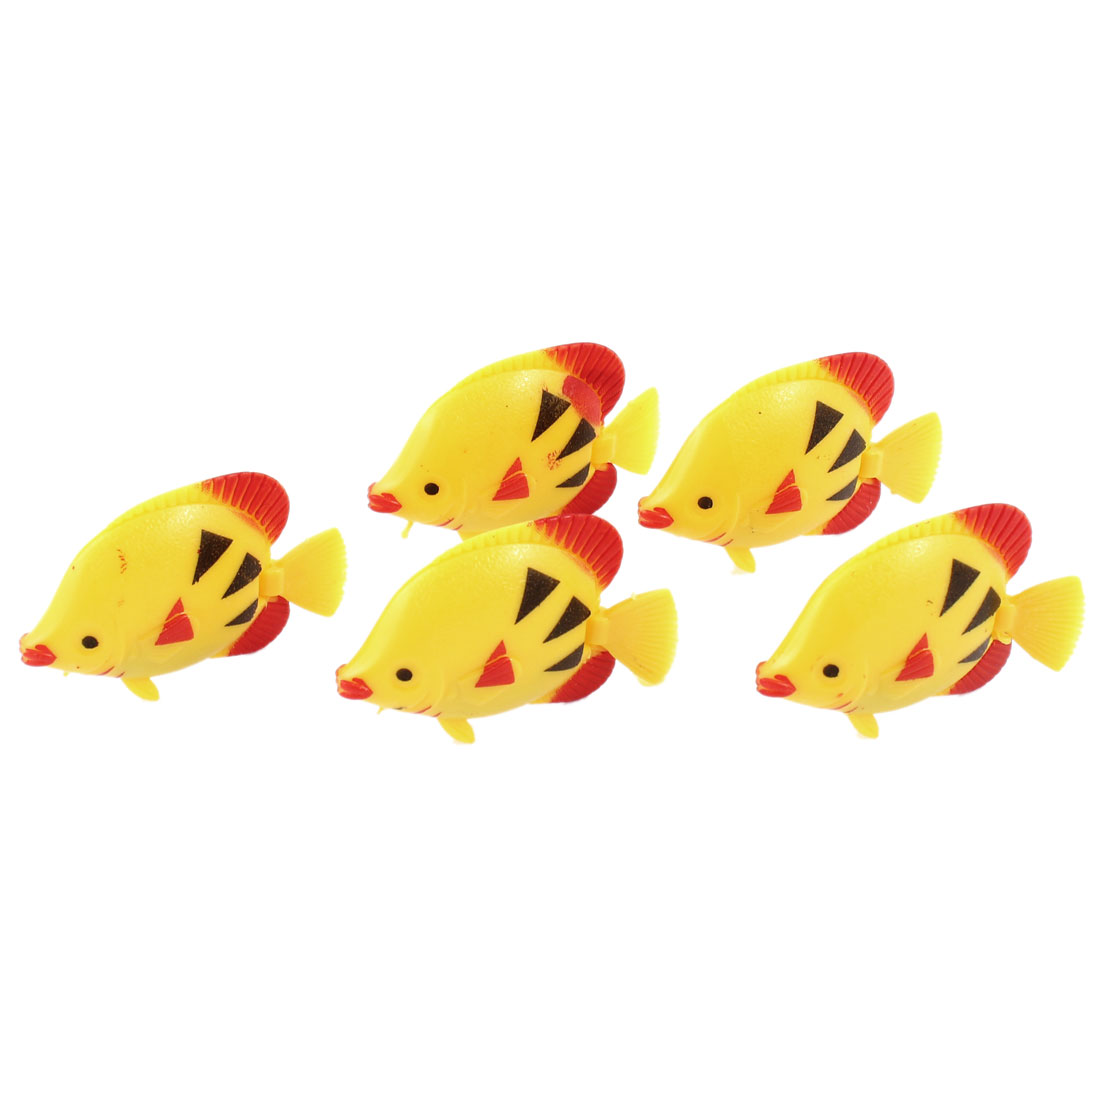 5 Pcs Aquarium Manmade Wiggly Tail Swimming Fishes Decor Yellow Red